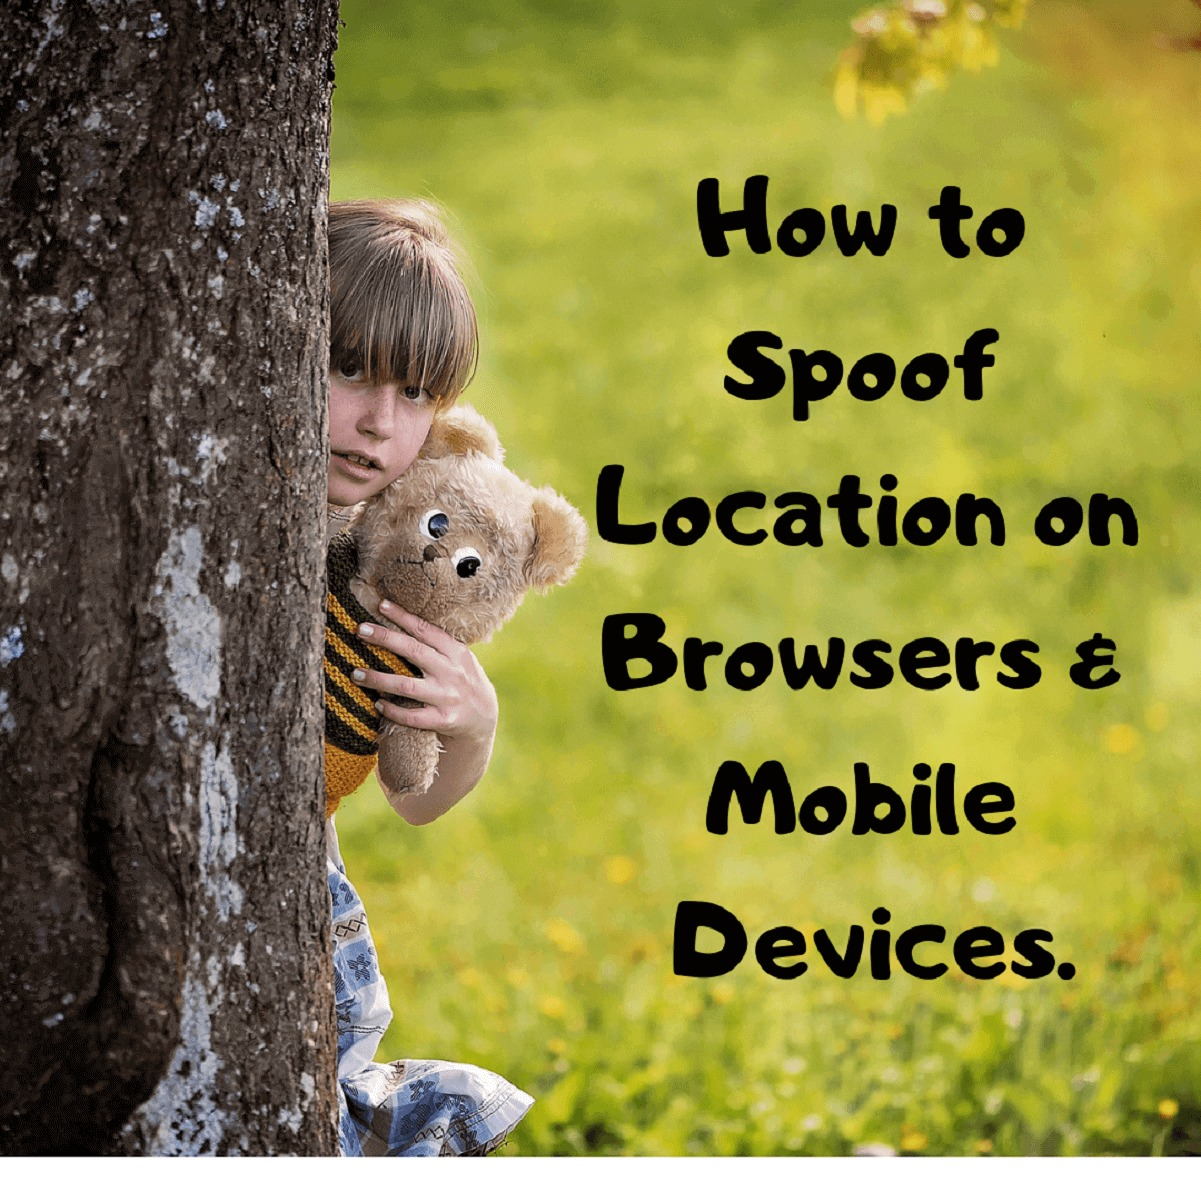 How to Spoof Location on Browsers & Mobile Devices?